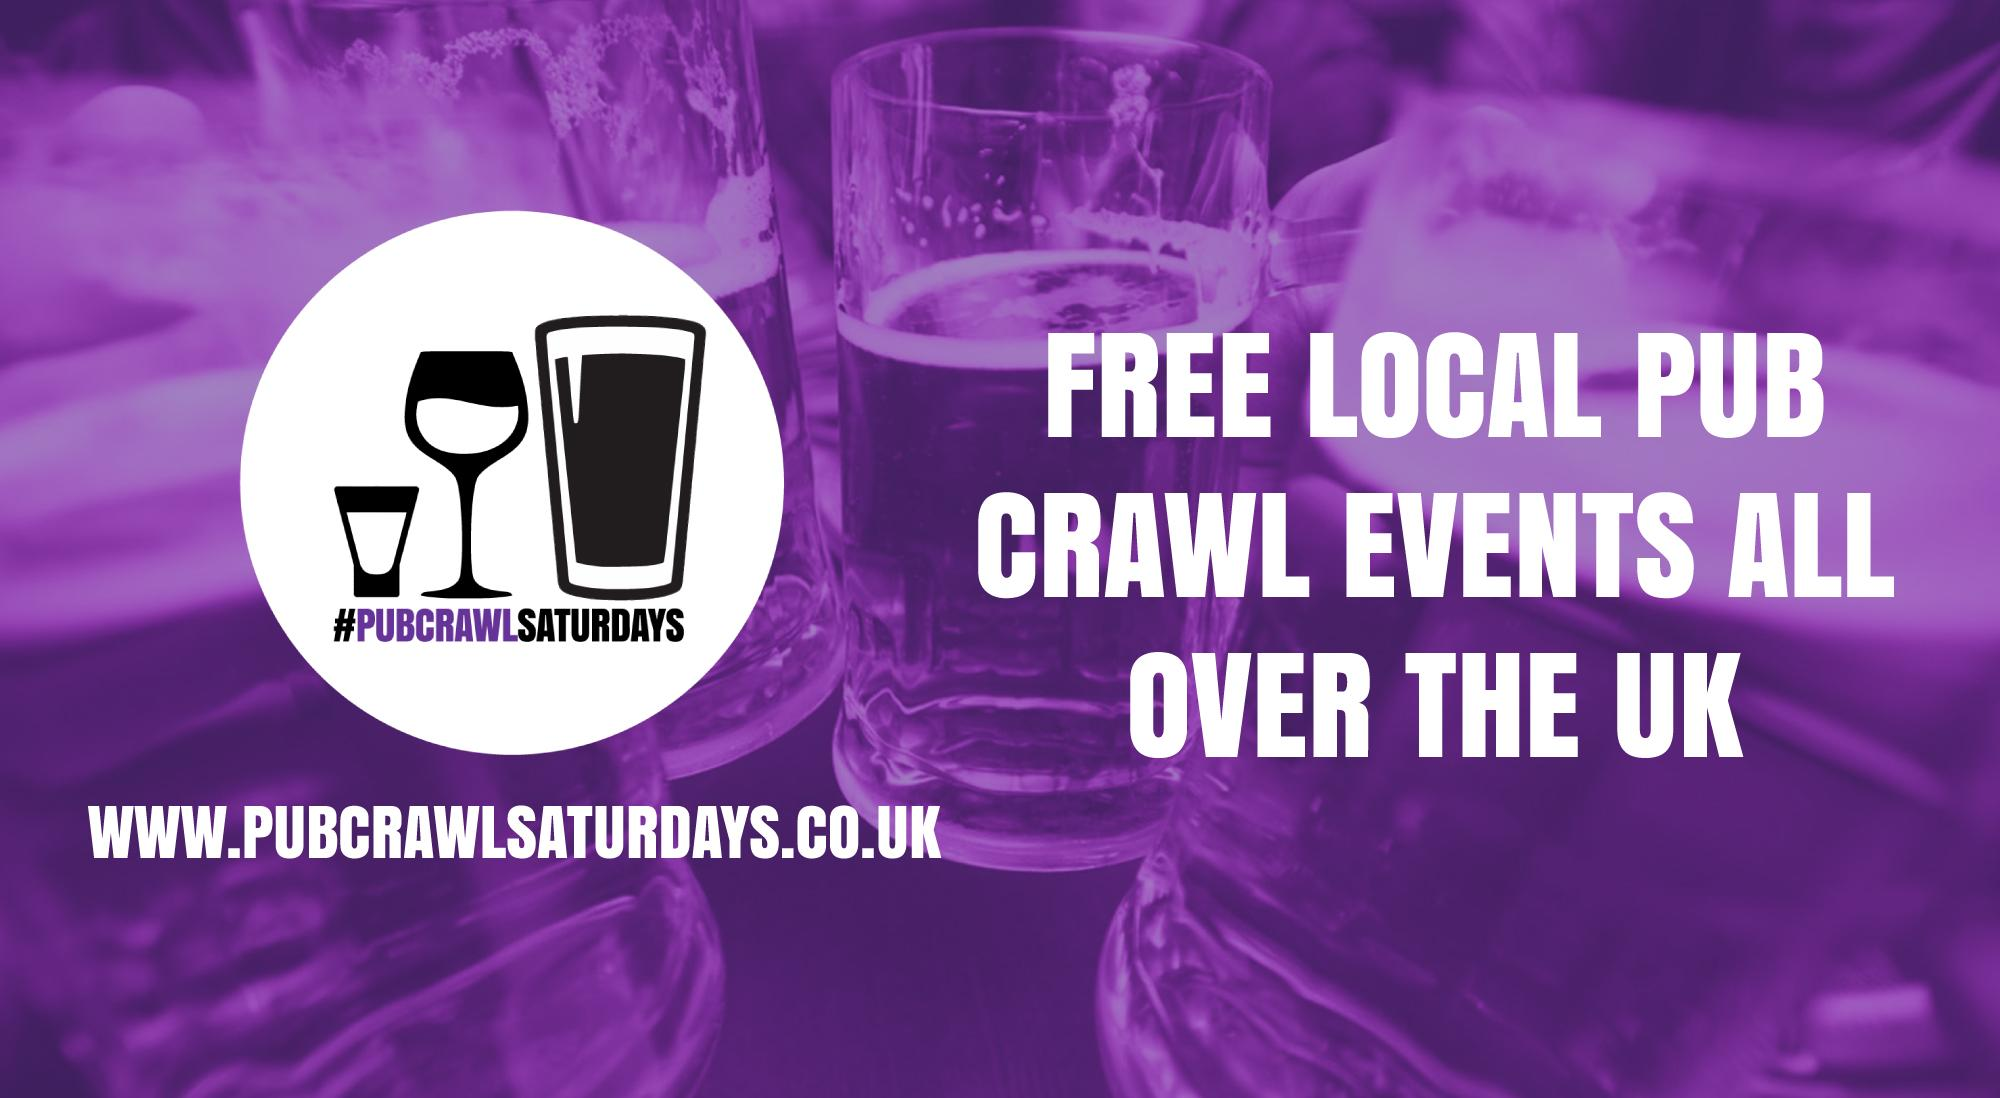 PUB CRAWL SATURDAYS! Free weekly pub crawl event in West Bromwich